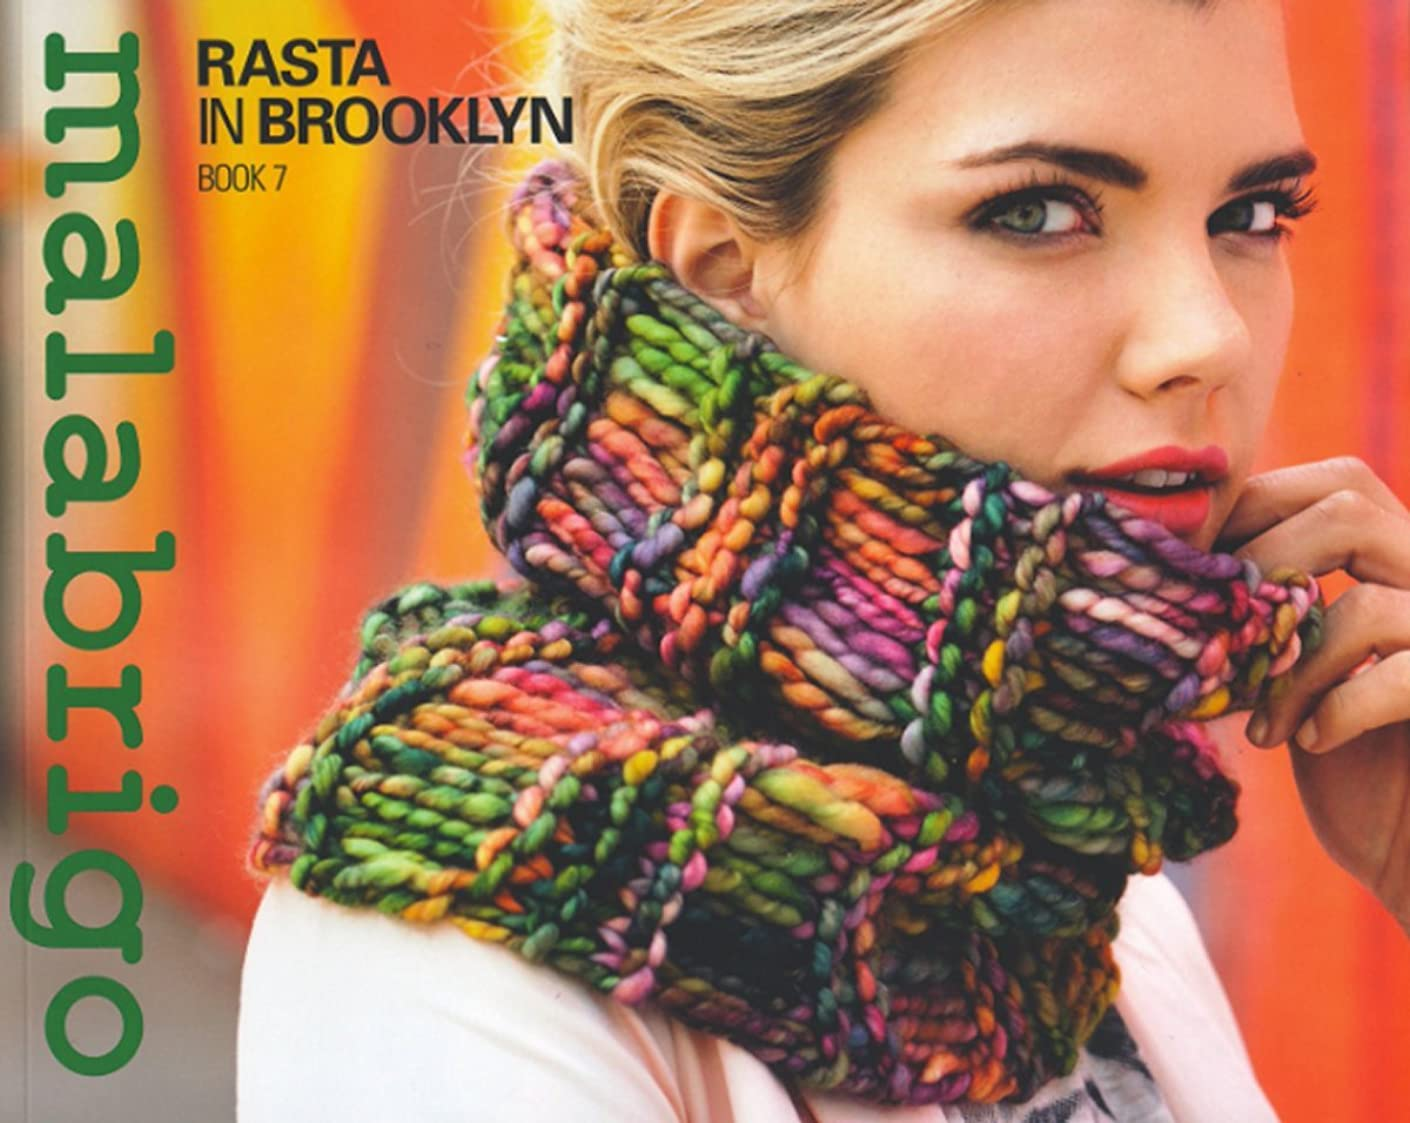 Malabrigo Book 7 Rasta in Brooklyn by Malabrigo Yarn (2014-05-04)